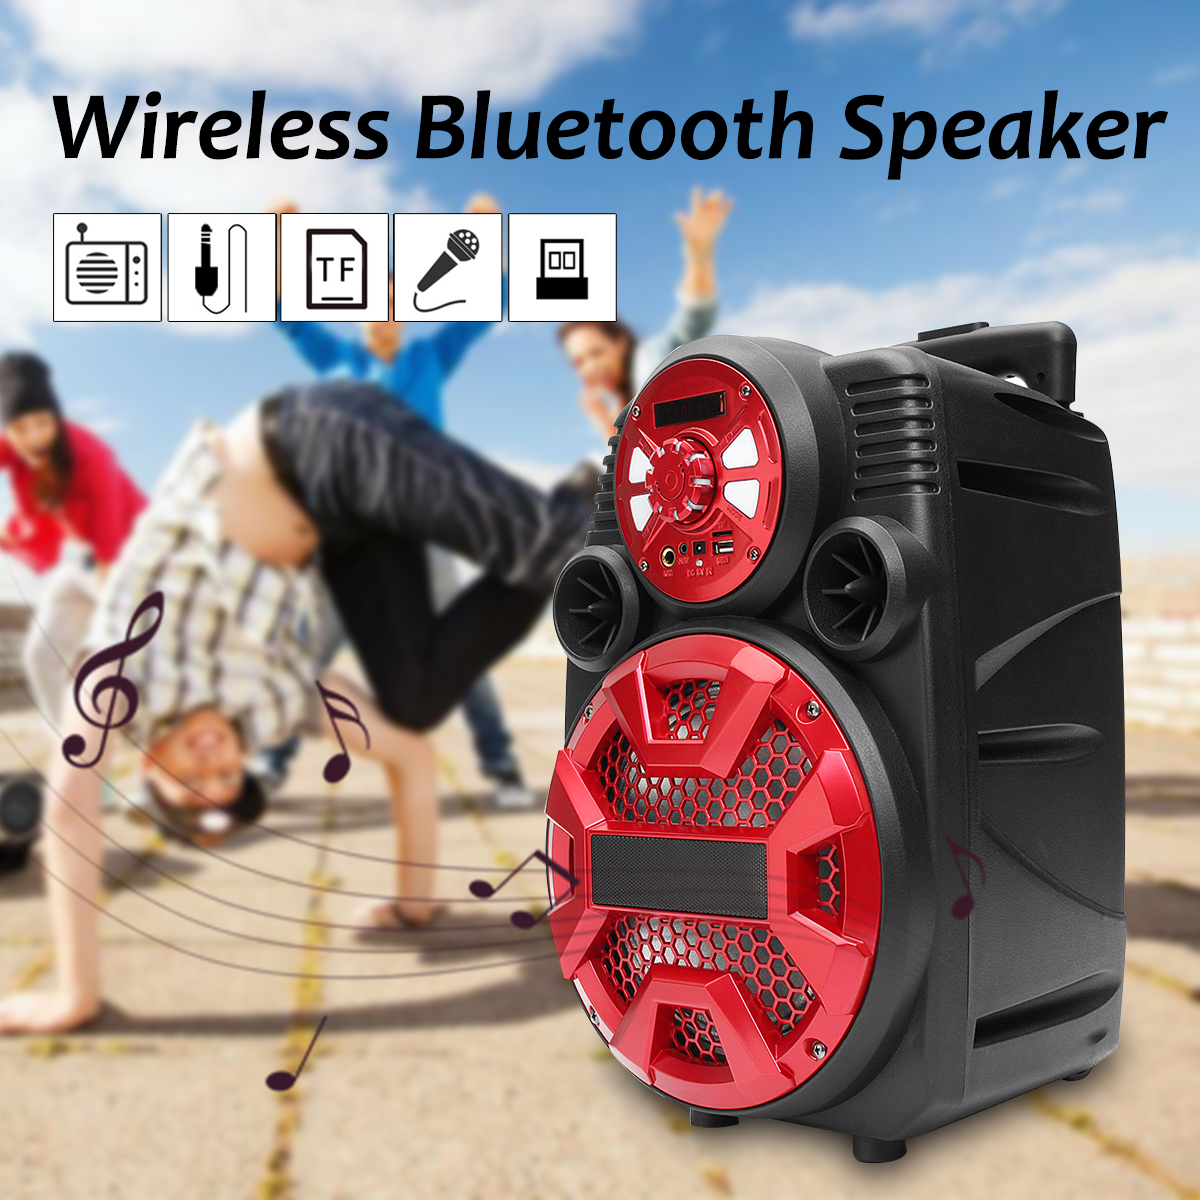 Led Lights Bluetooth DJ Speaker Wireless Stereo Subwoofer Heavy Bass Speakers Music Player Support LCD AUX FM Radio TF Cards 3 speakers bluetooth speaker wireless stereo subwoofer heavy bass speaker music player support tf card fm radio boombox